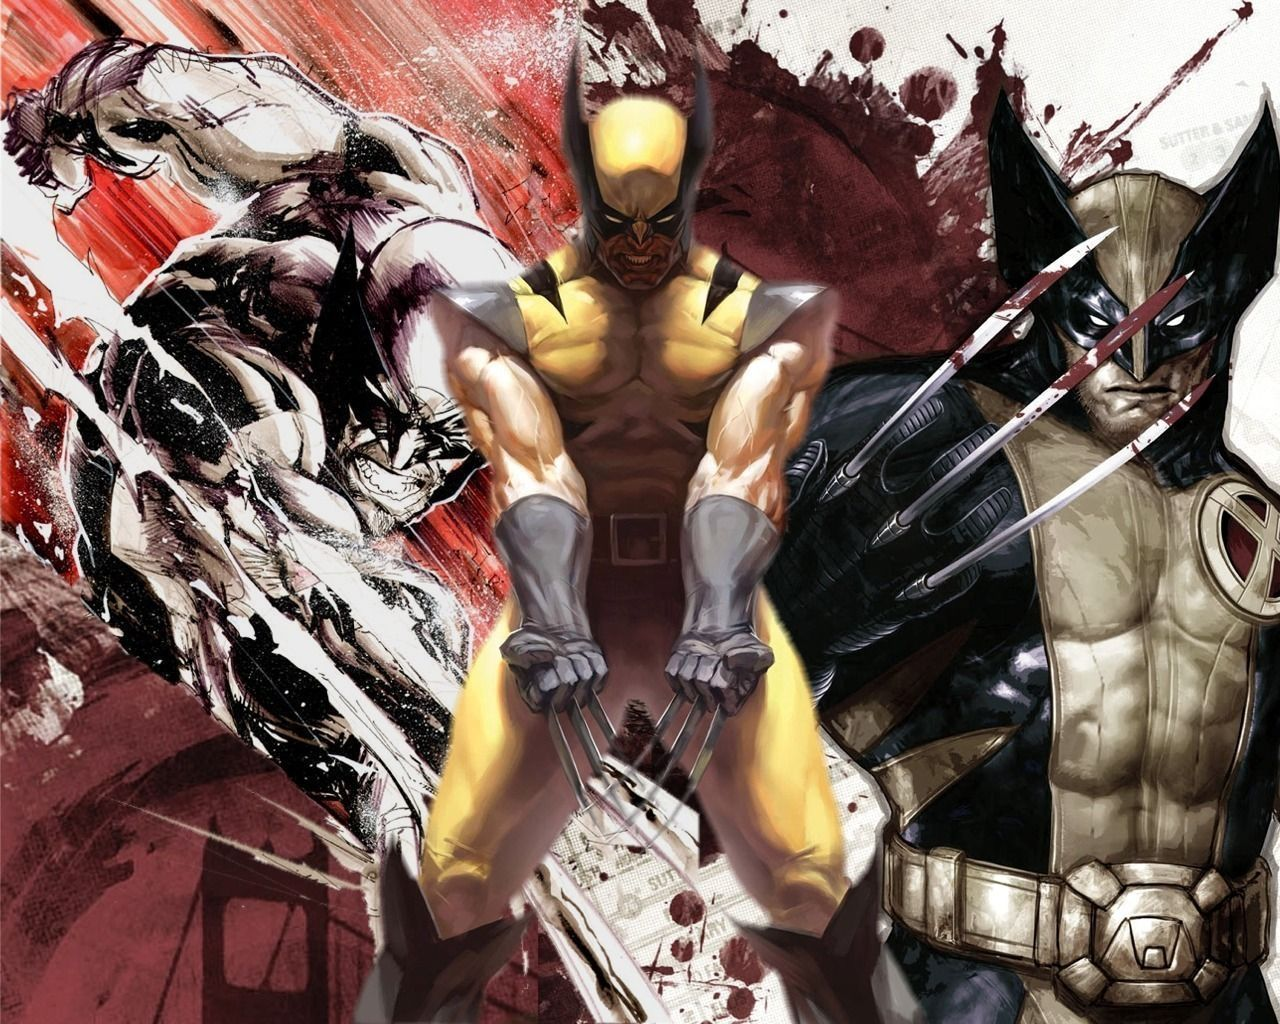 Xmen wallpapers wallpaper 19201080 x men wallpapers 52 wallpapers wolverine wallpaper multiple artist contributed to this 1280 1024 wallpaper voltagebd Images